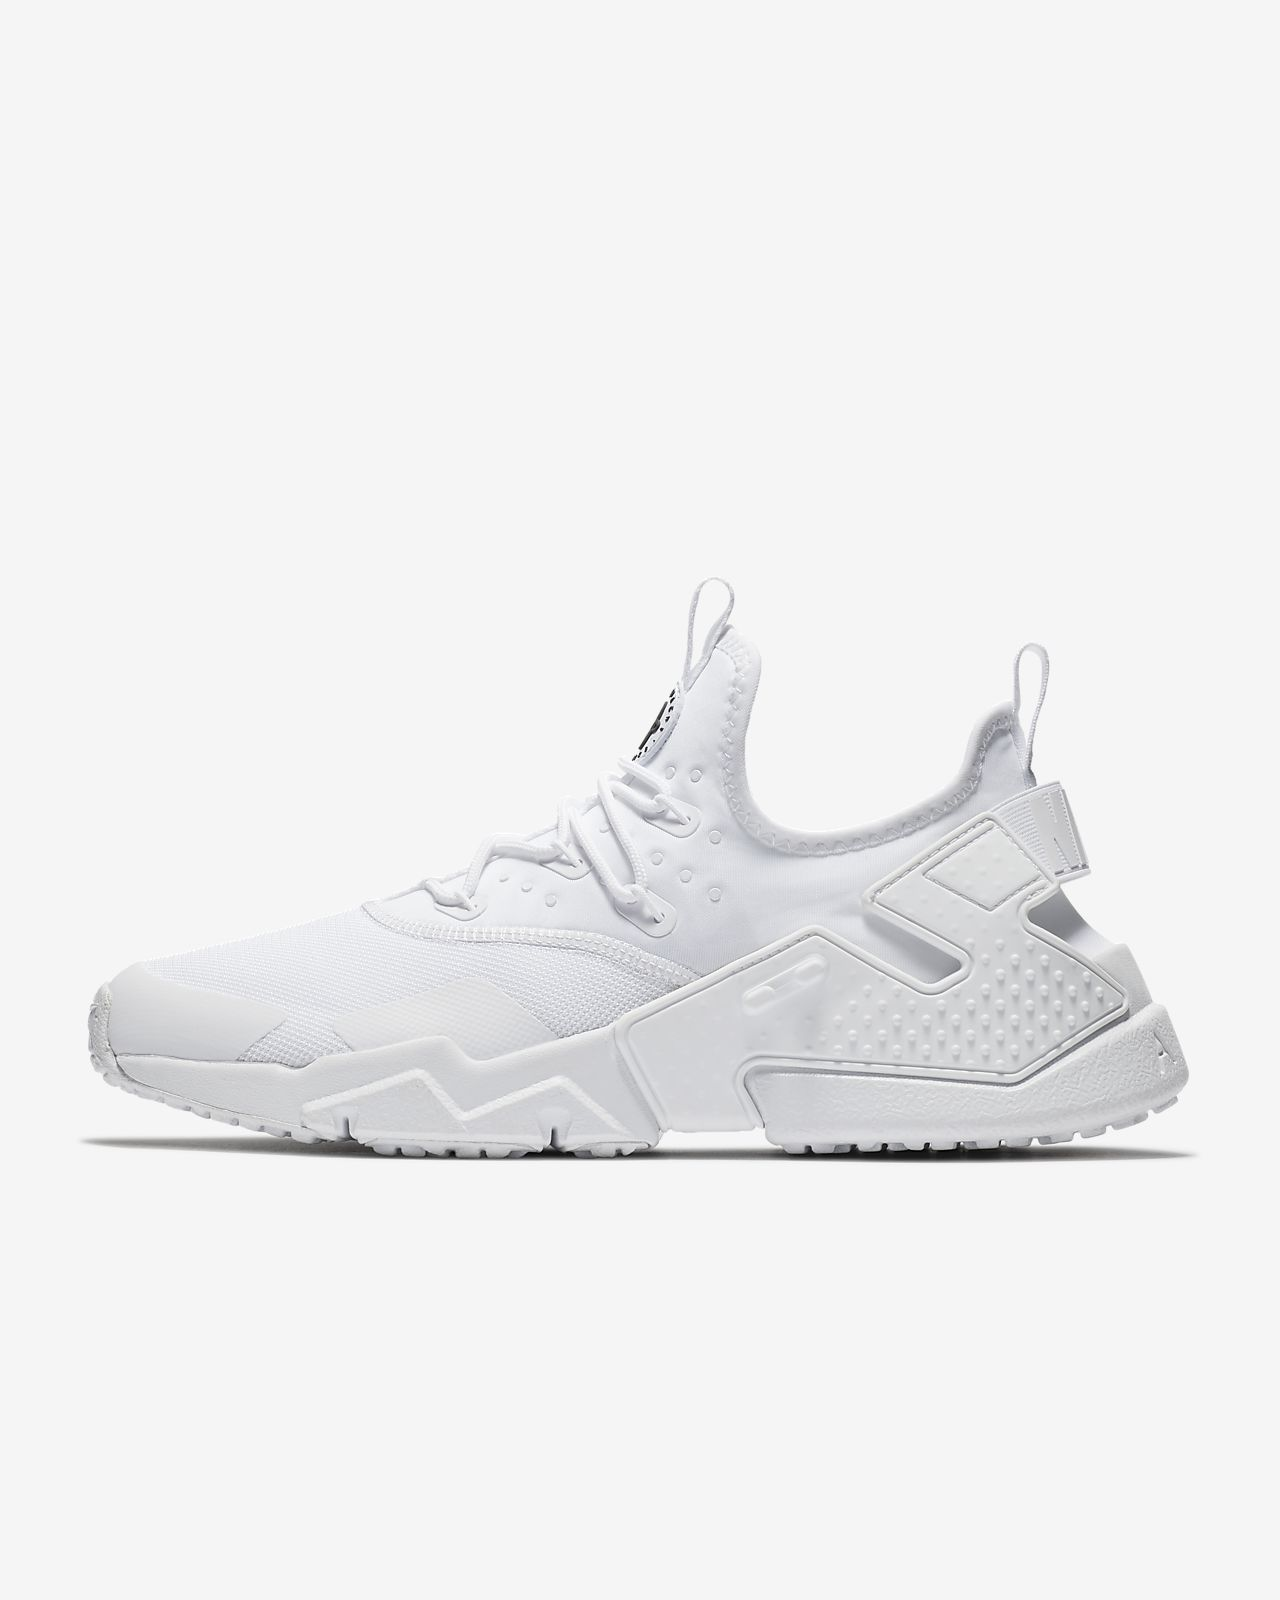 dba14c9e25353 Nike Air Huarache Drift Men s Shoe. Nike.com